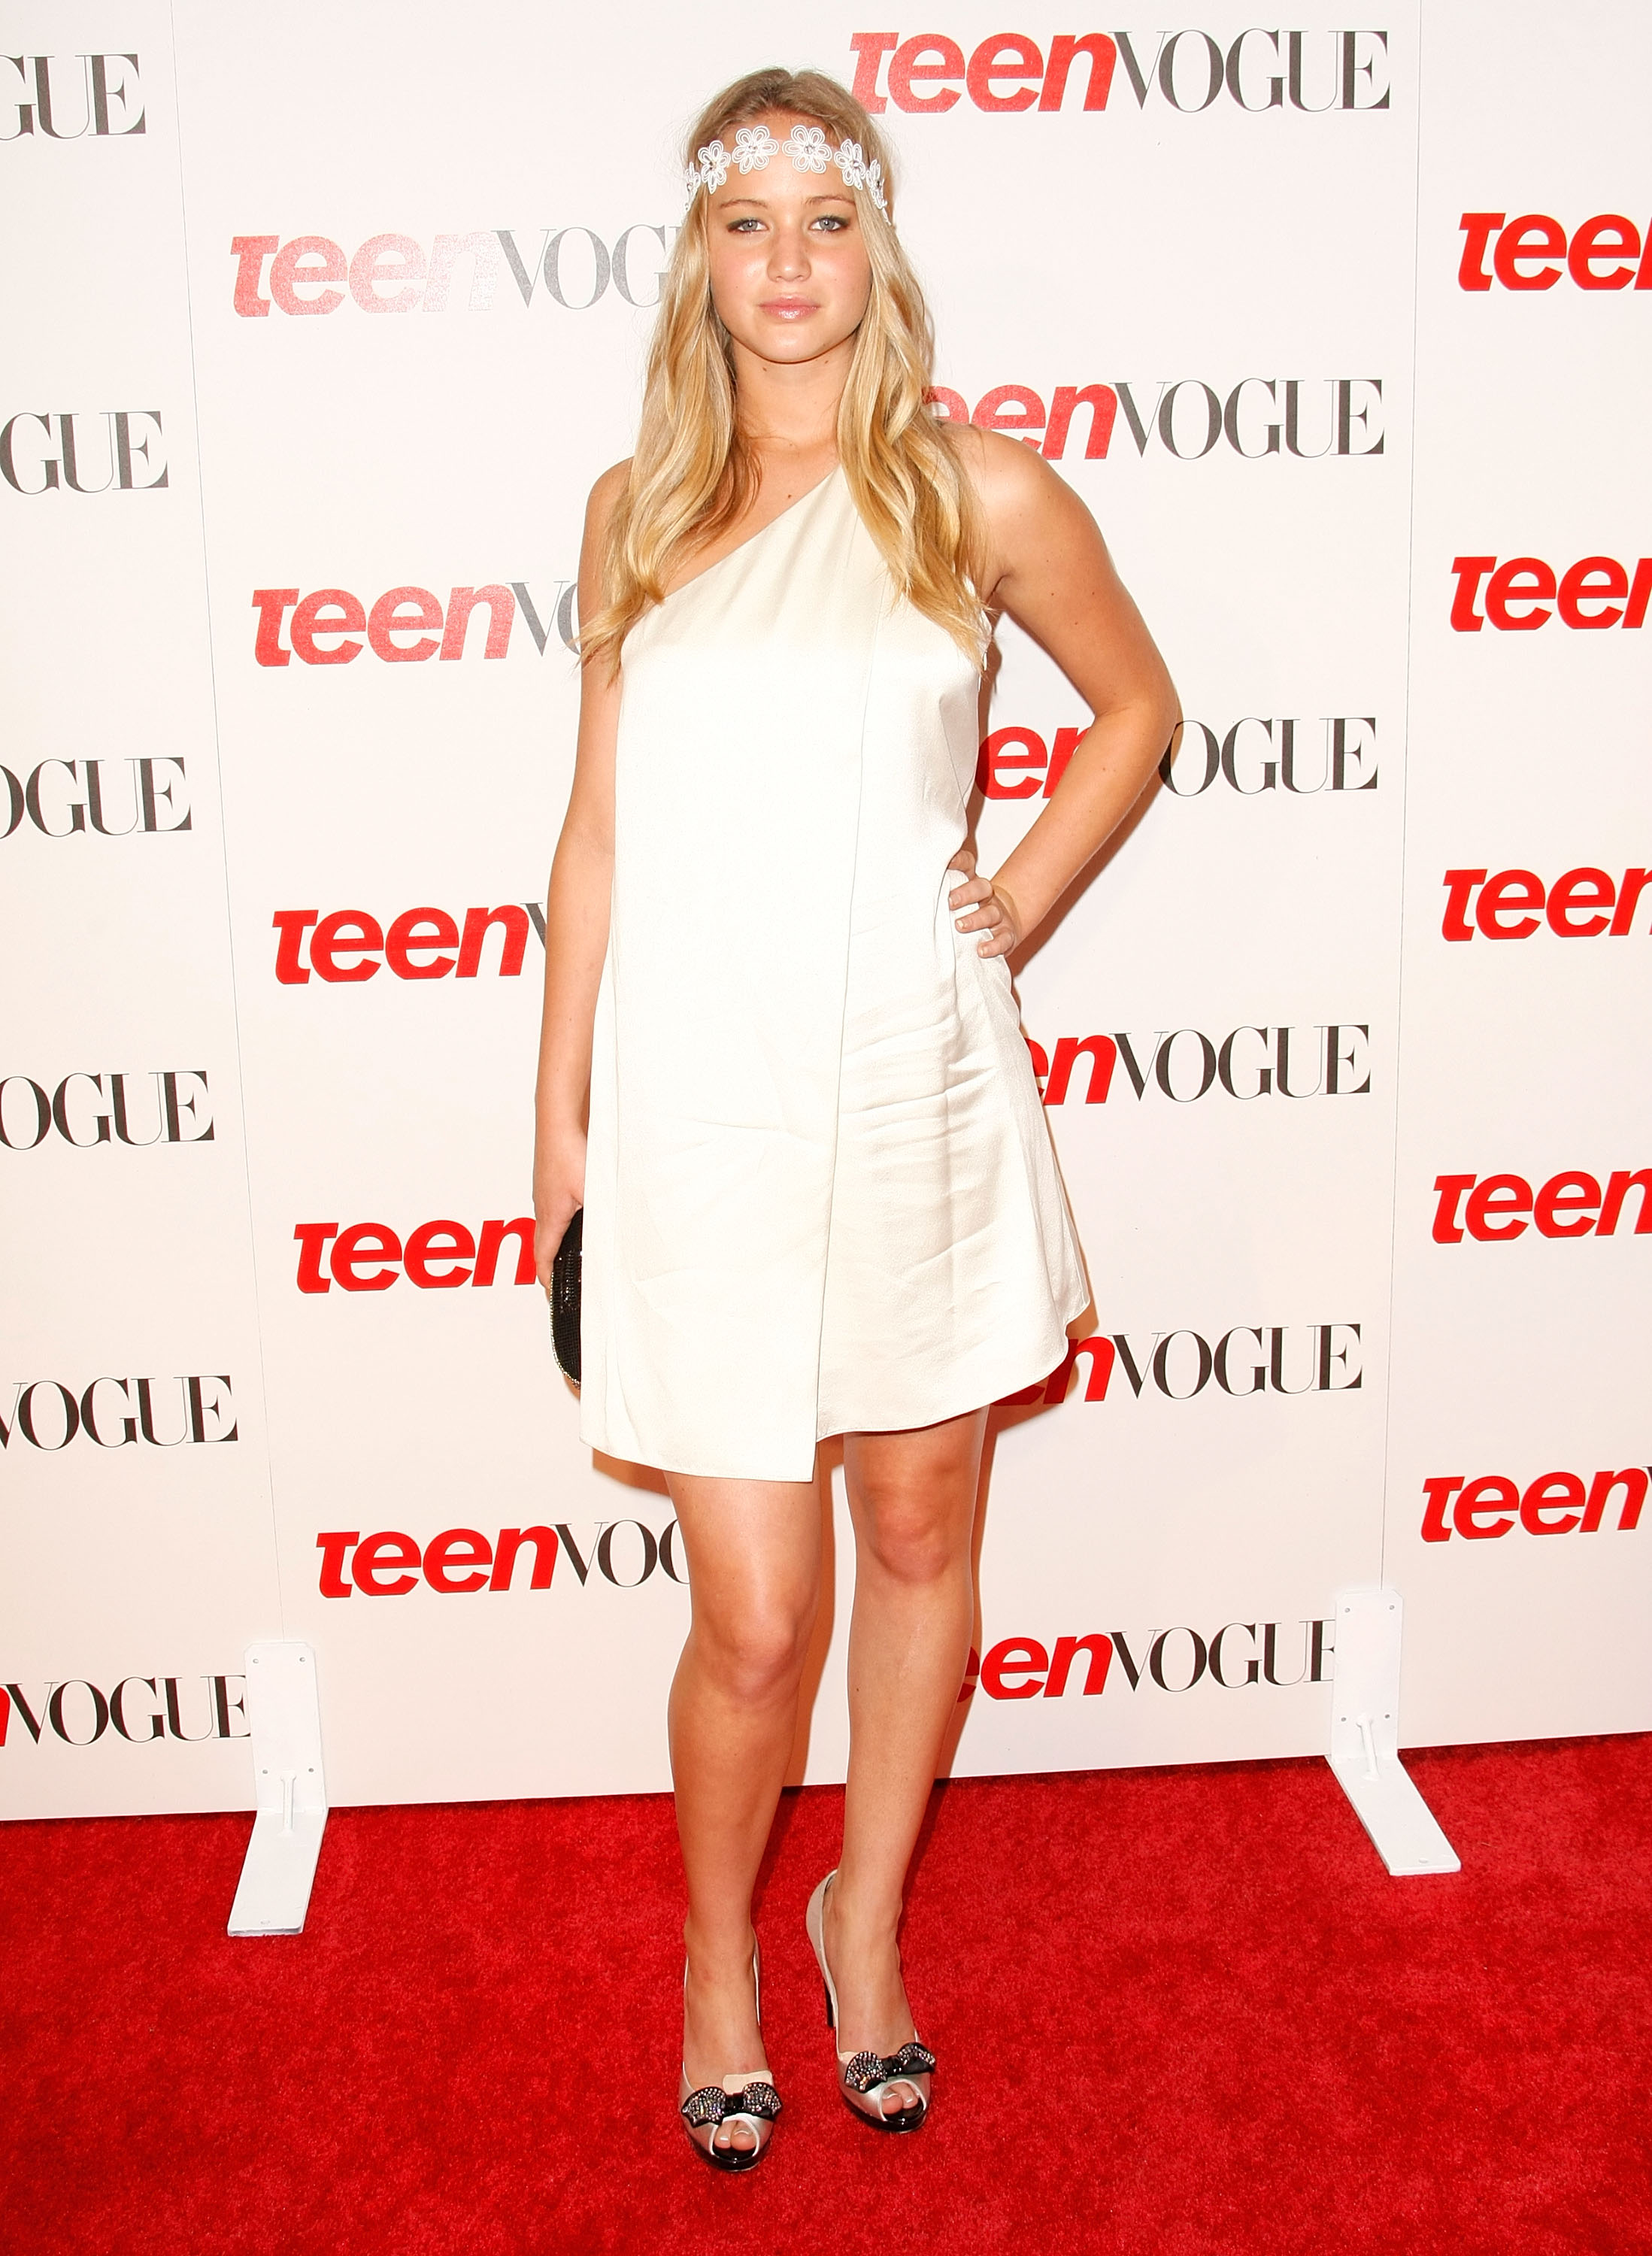 Jennifer Lawrence's style evolution from 2008 to today [GALLERY]